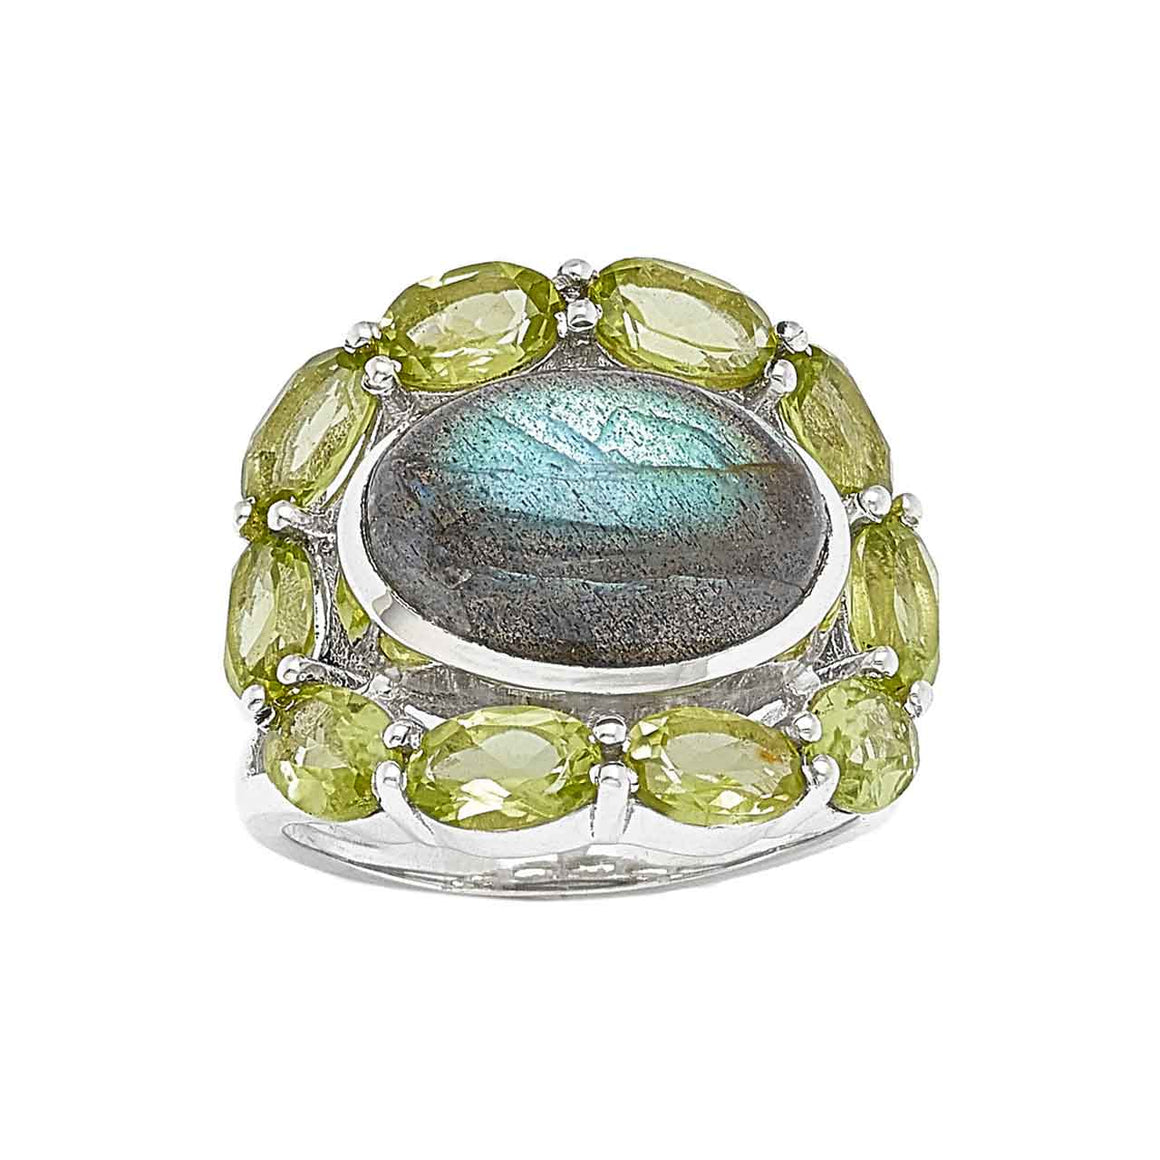 Labradorite and Faceted Peridot Ring